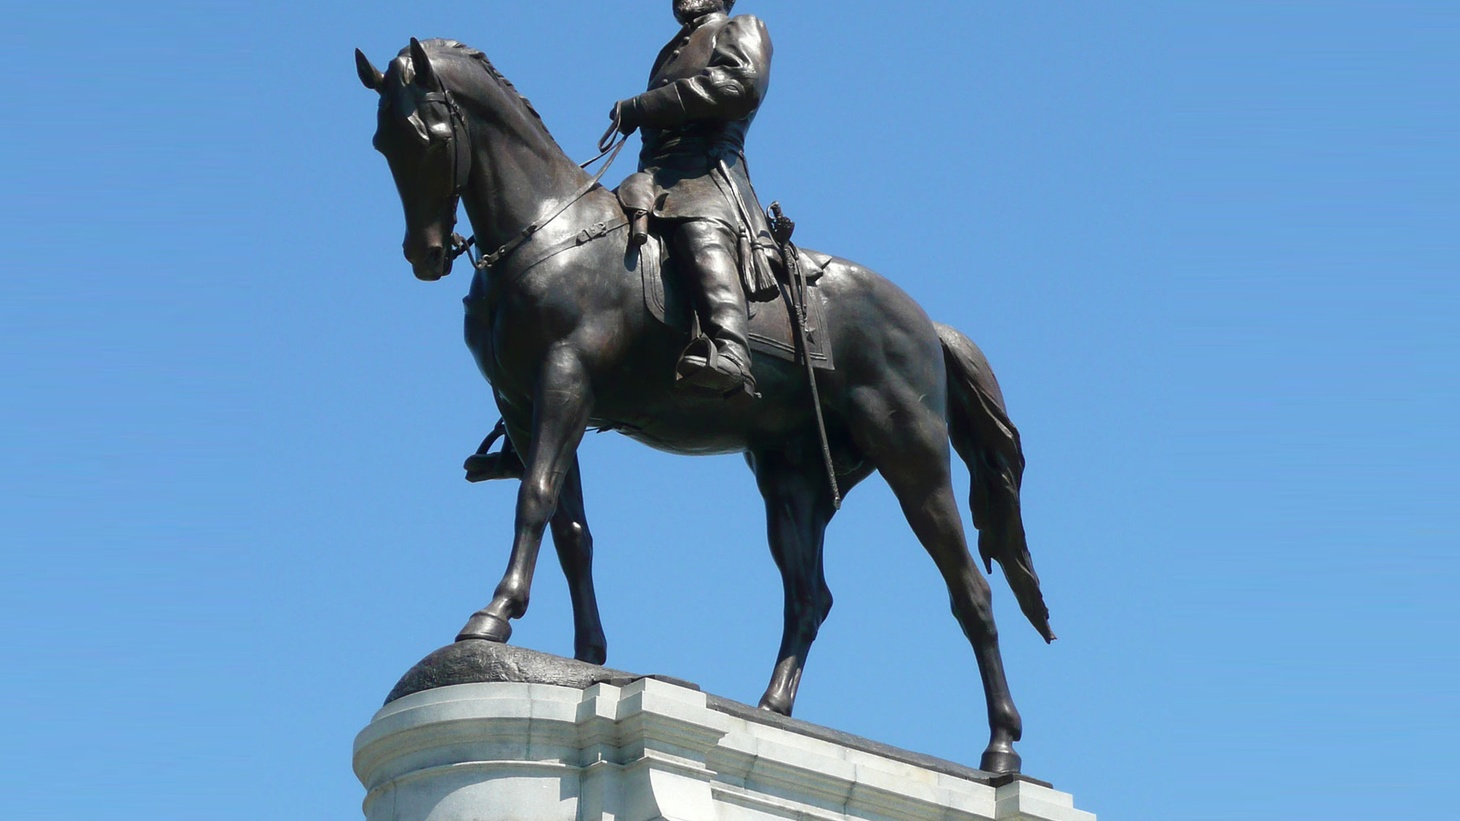 A statue of Robert E. Lee on Monument Avenue in Richmond, Virginia, the former capitol of the Confederacy. Mayor Levar M. Stoney has said he believes the Confederate statues should be removed.